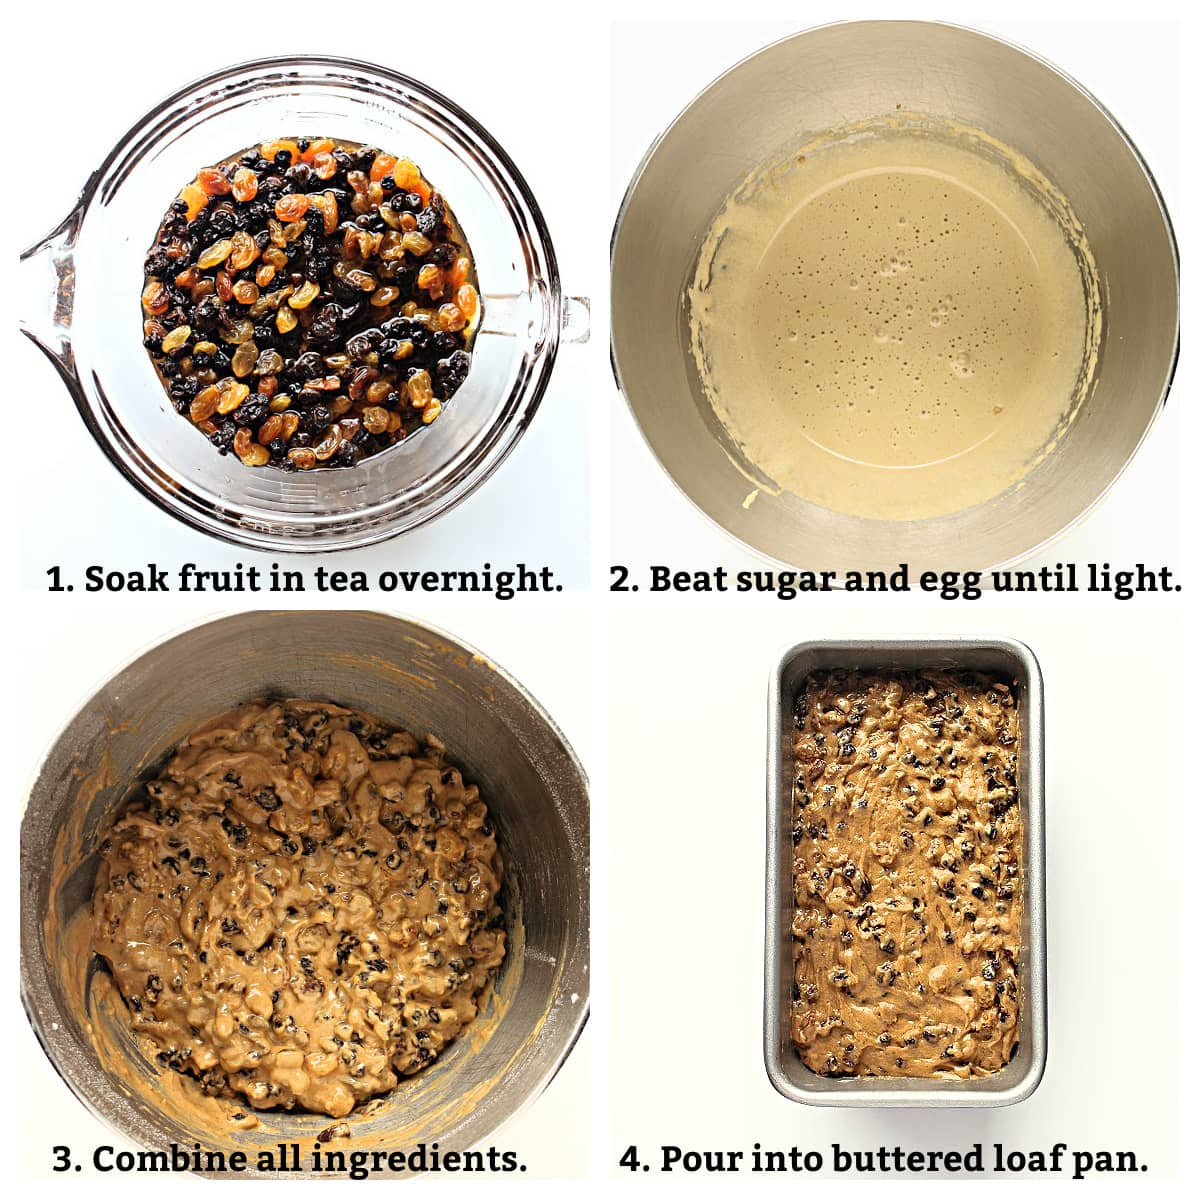 Instructions collage showing soak fruit, beat egg and sugar, combine ingredients, pour into buttered pan.